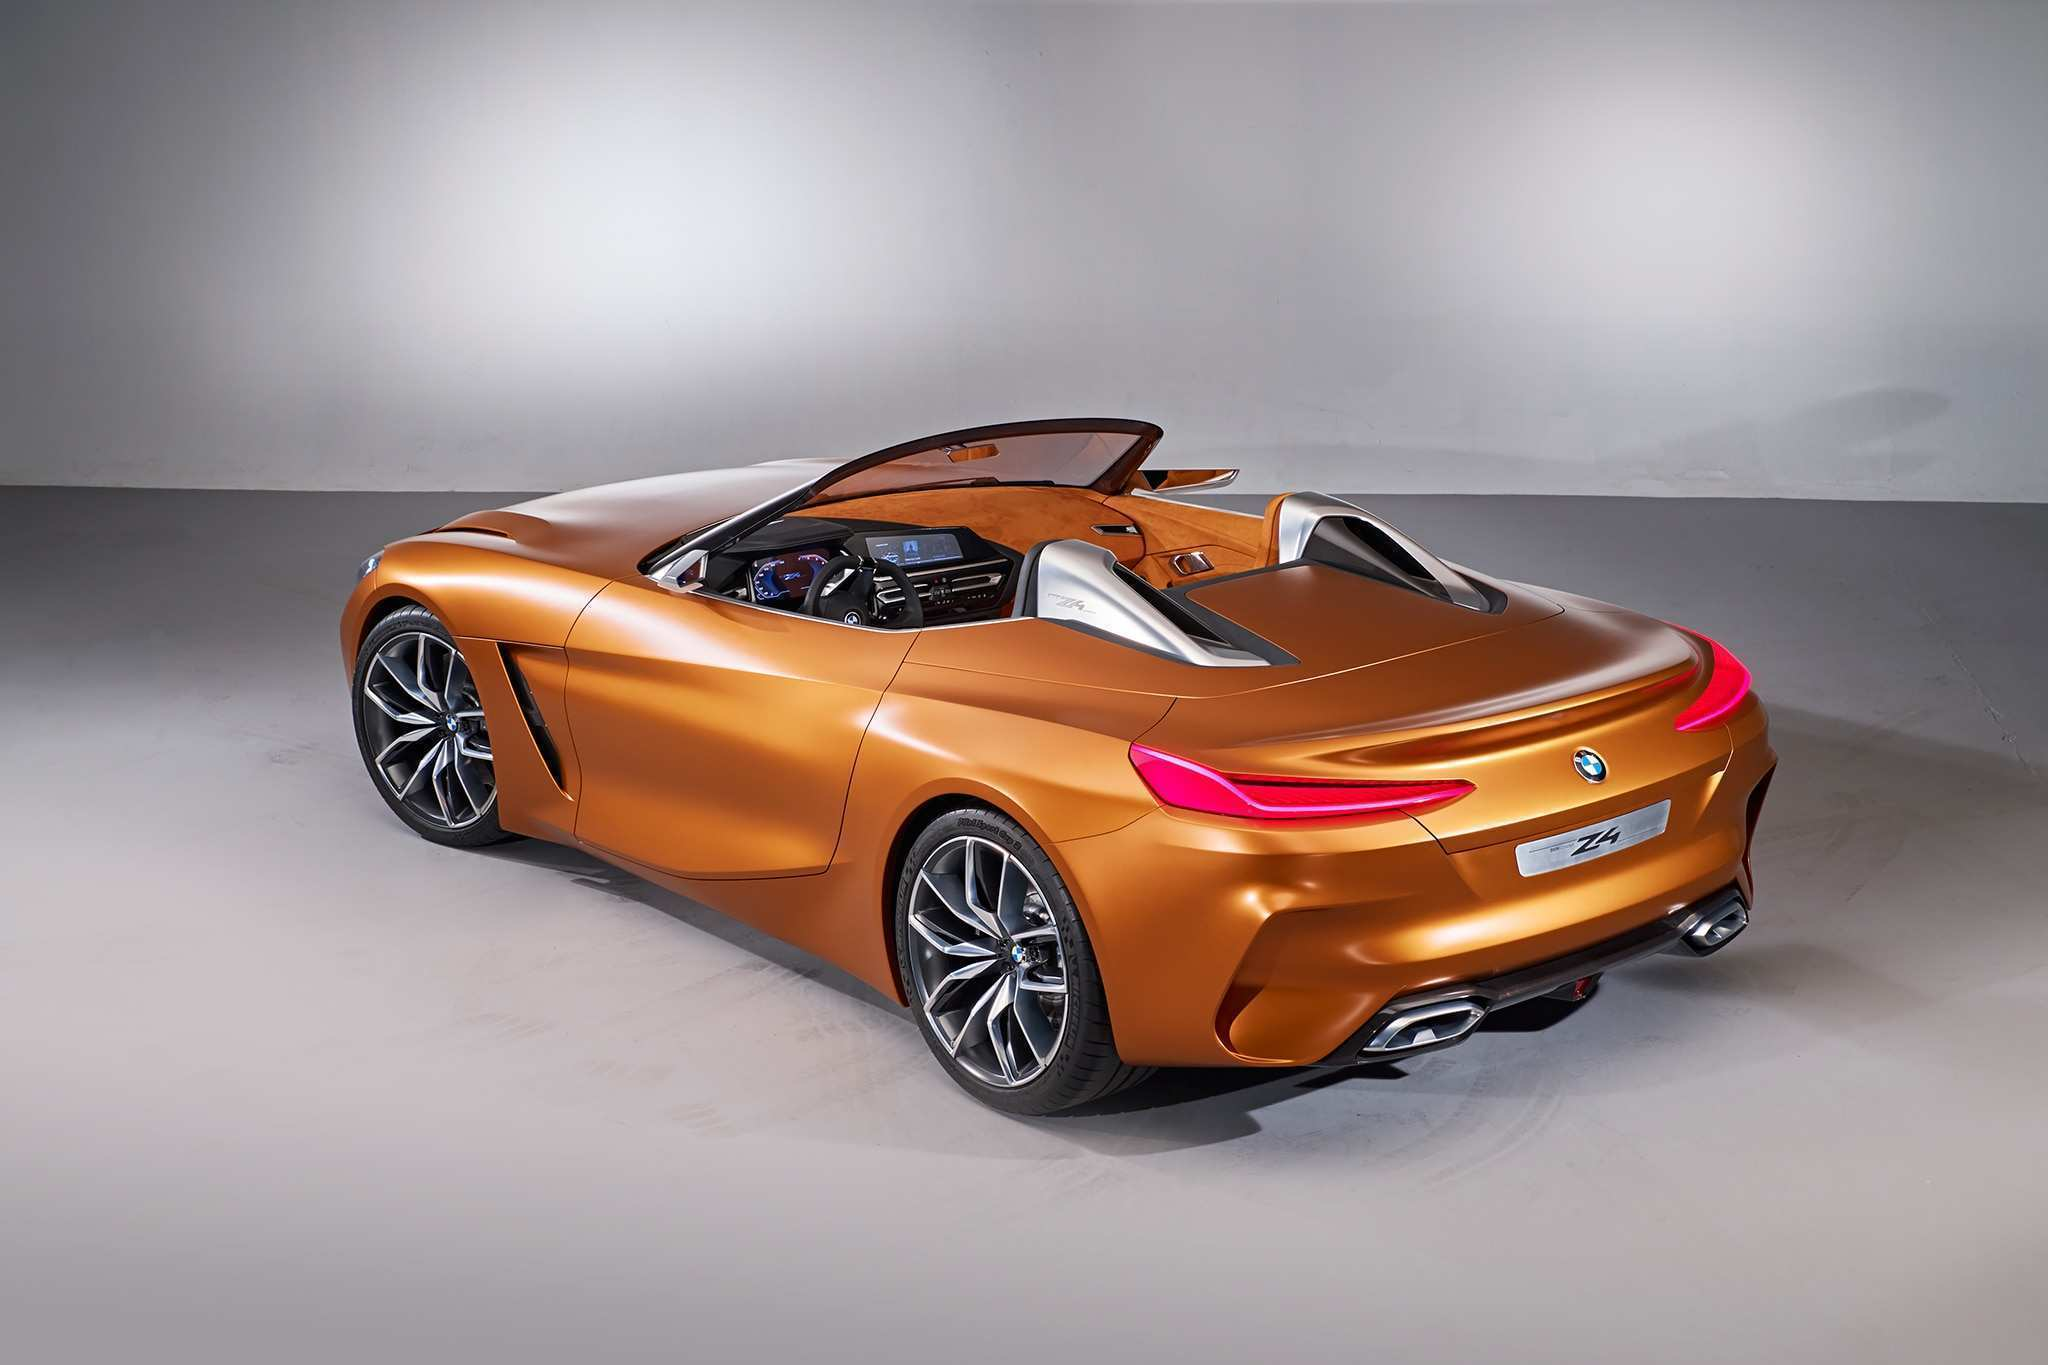 56 Gallery of 2019 Bmw Roadster Photos with 2019 Bmw Roadster